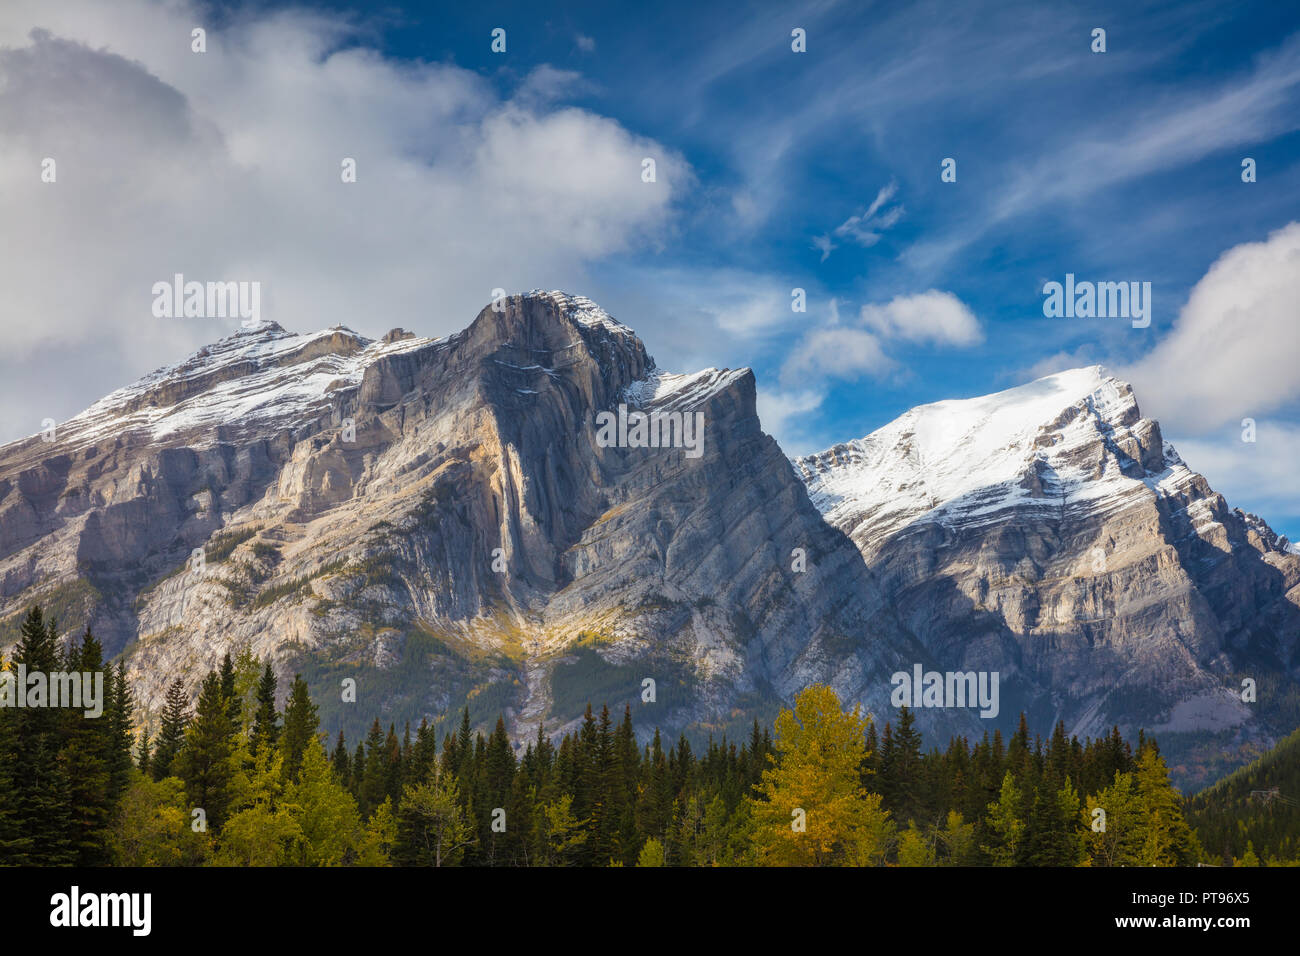 Kananaskis Country is a park system situated to the west of Calgary, Alberta, Canada in the foothills and front ranges of the Canadian Rockies. - Stock Image